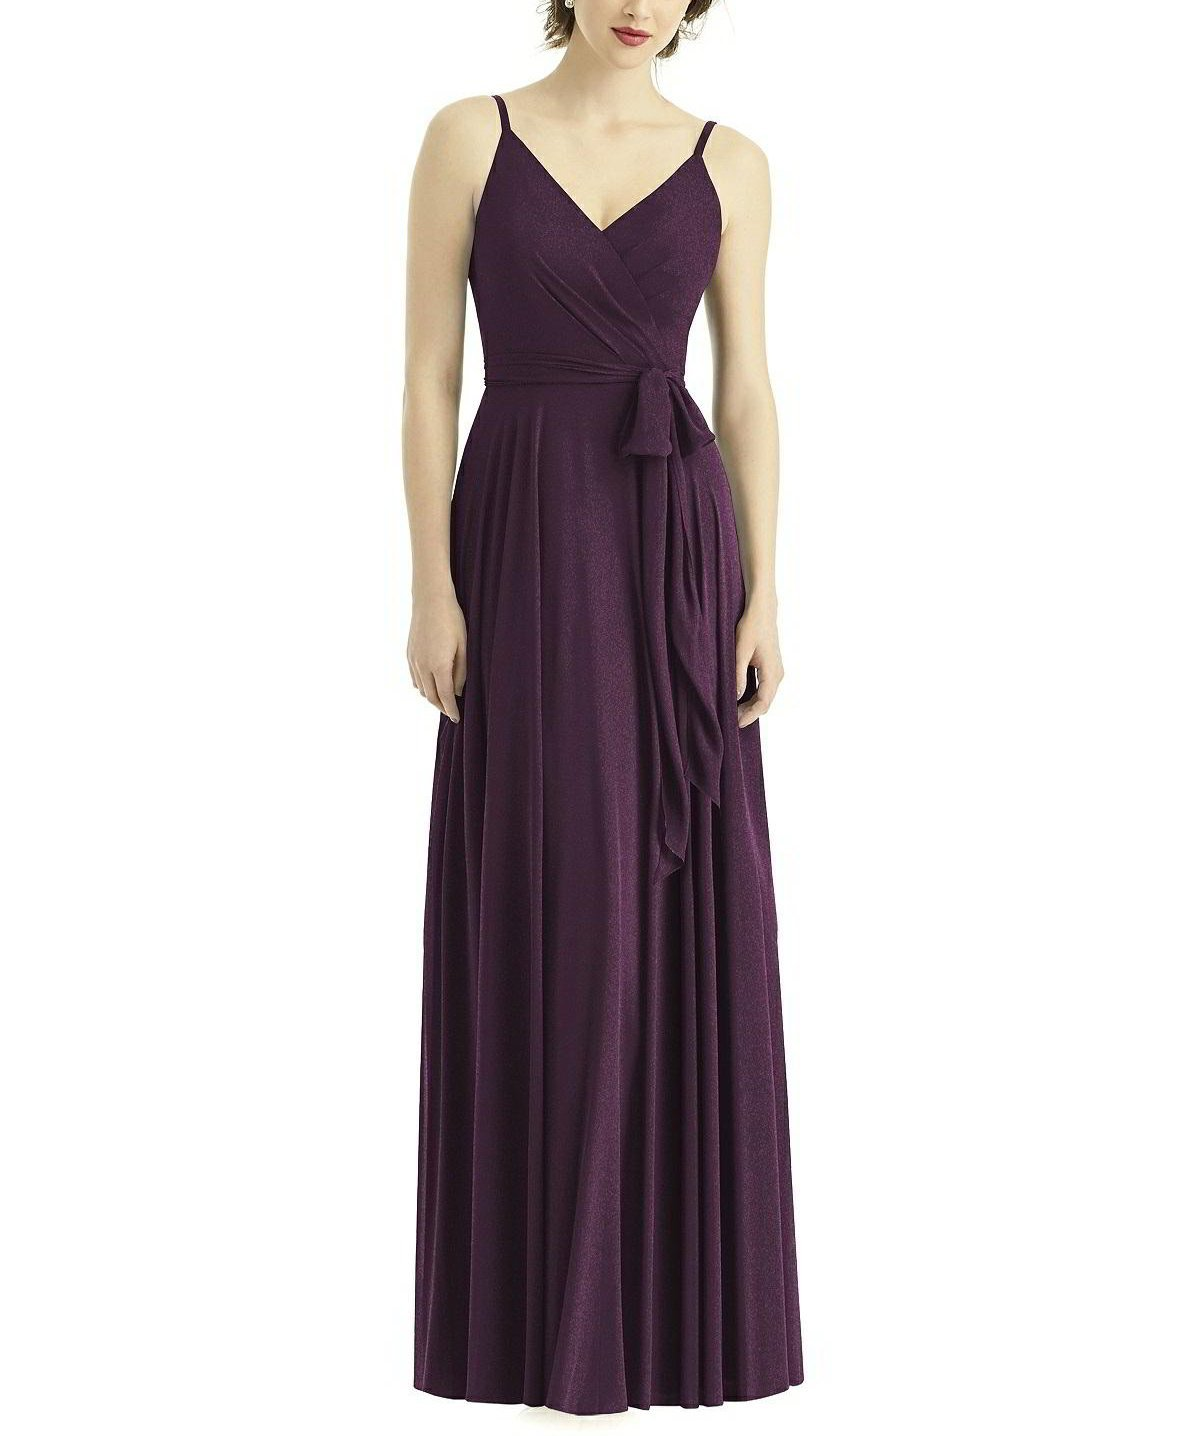 84e2fe0430b Description - After Six Style 1511 - Full length bridesmaid dress -  V-neckline with spaghetti straps - Deep v back and matching sash - A-line  silhouette ...